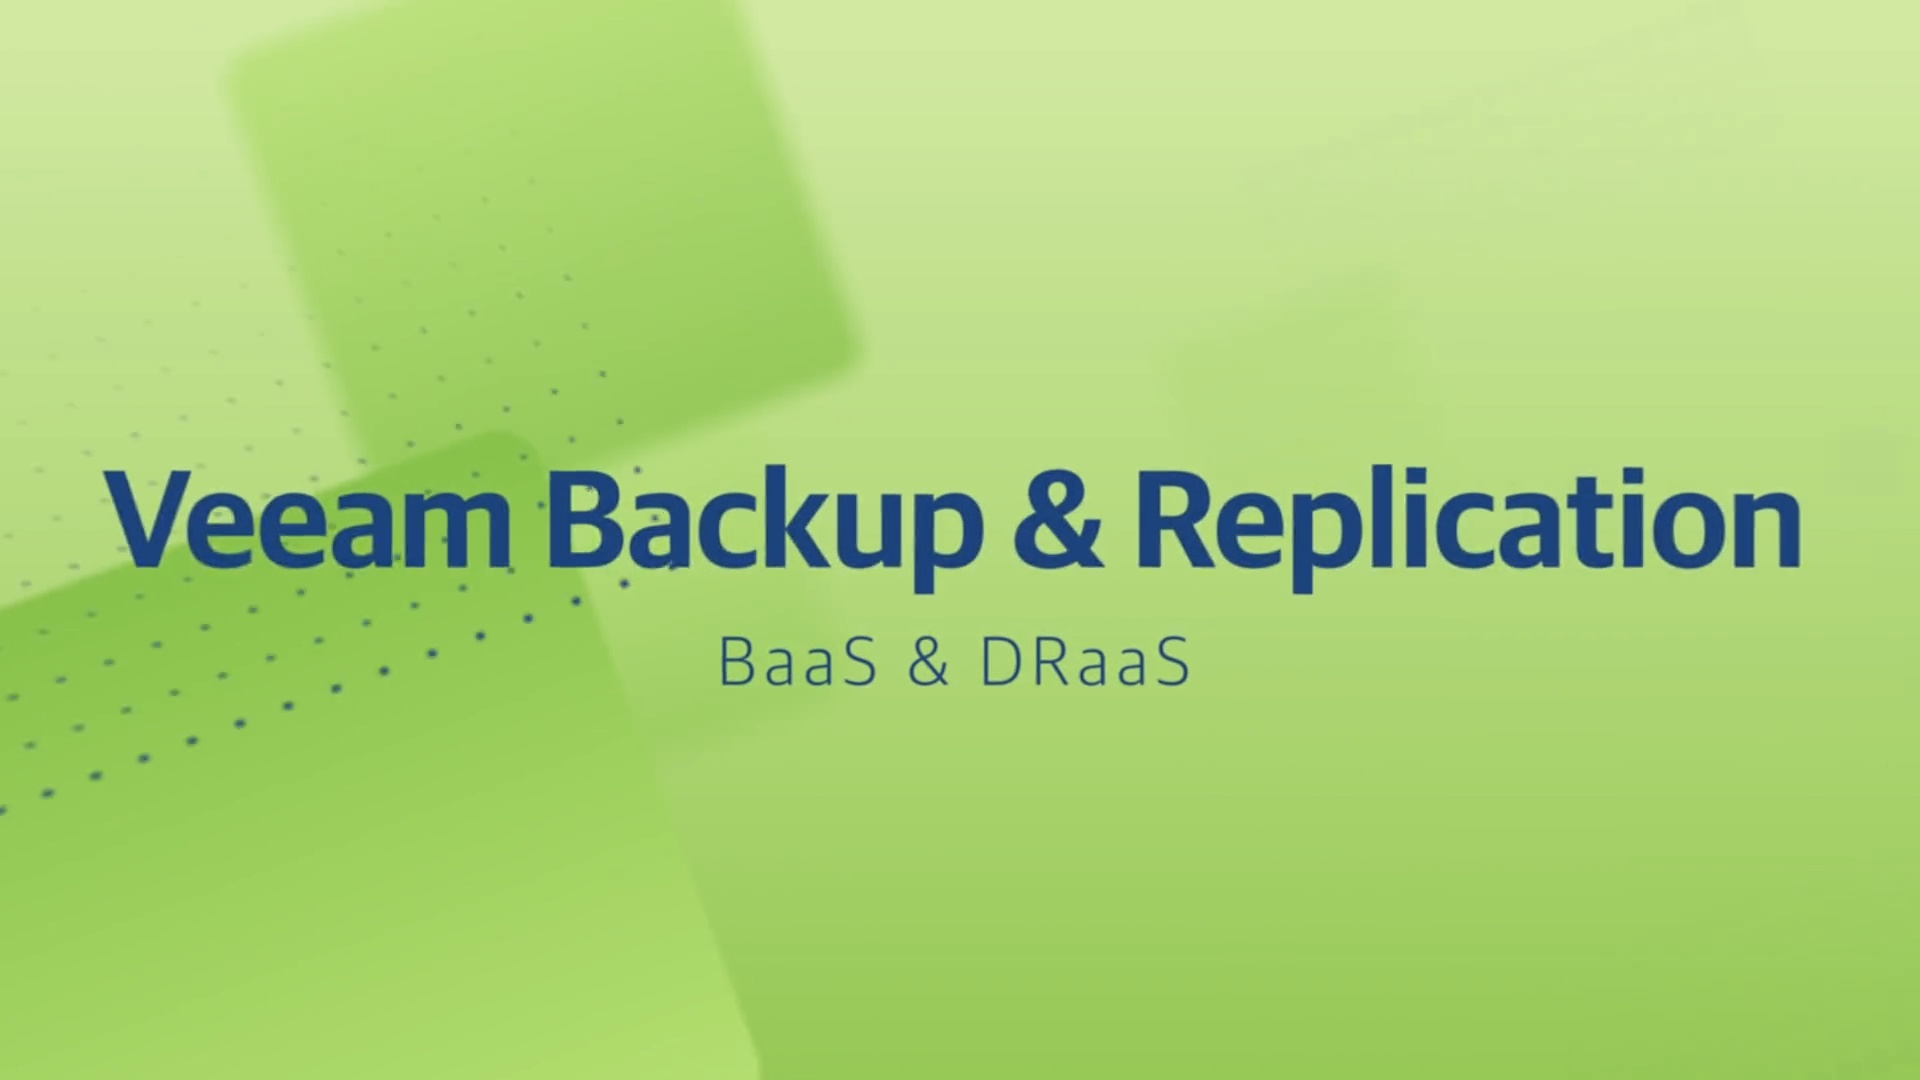 Product launch v11 - VBR - BaaS & DRaaS